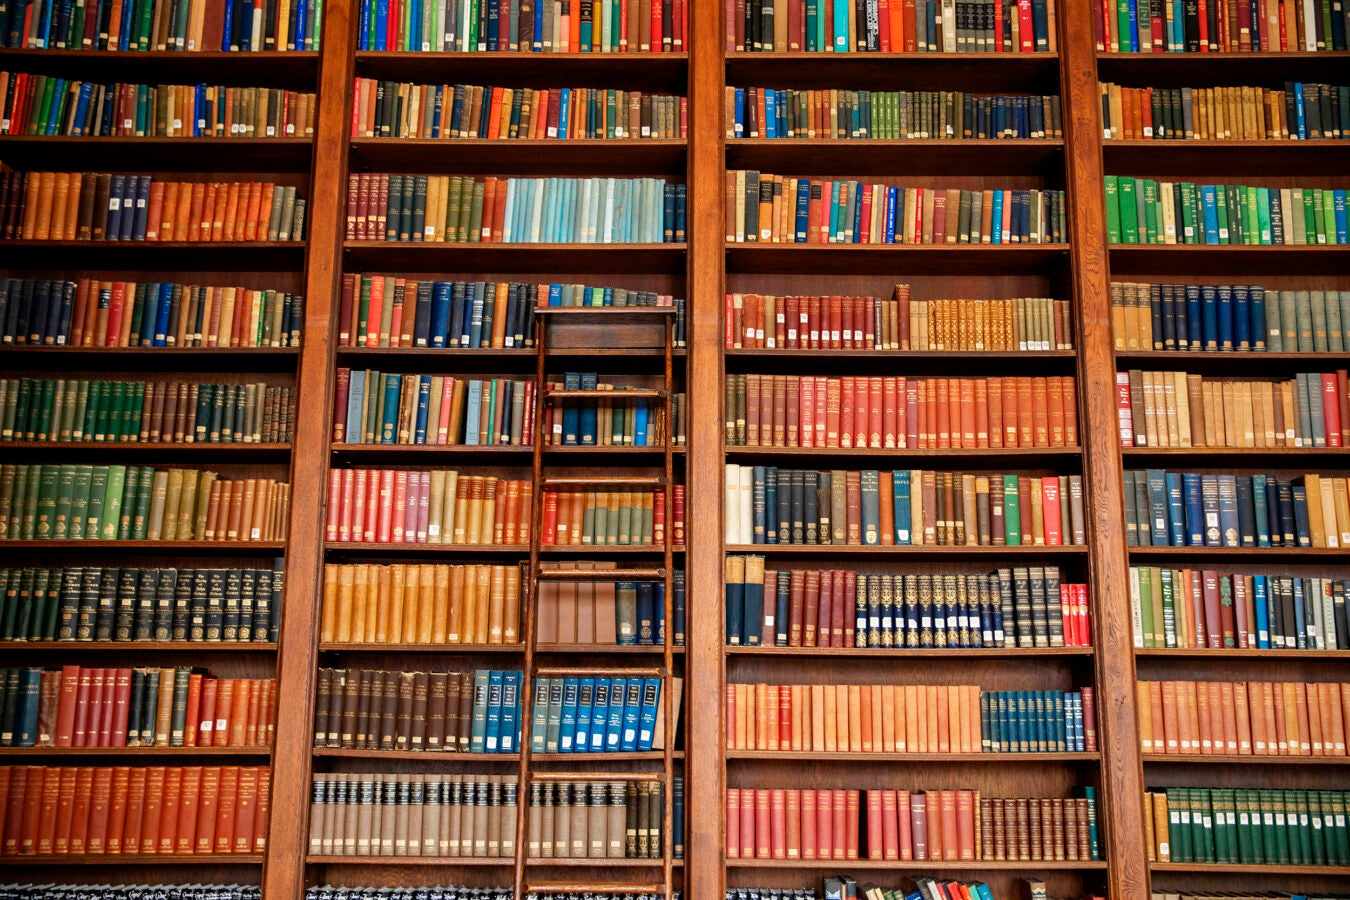 The Dunster House library features a rainbow of classics on its bookshelves.